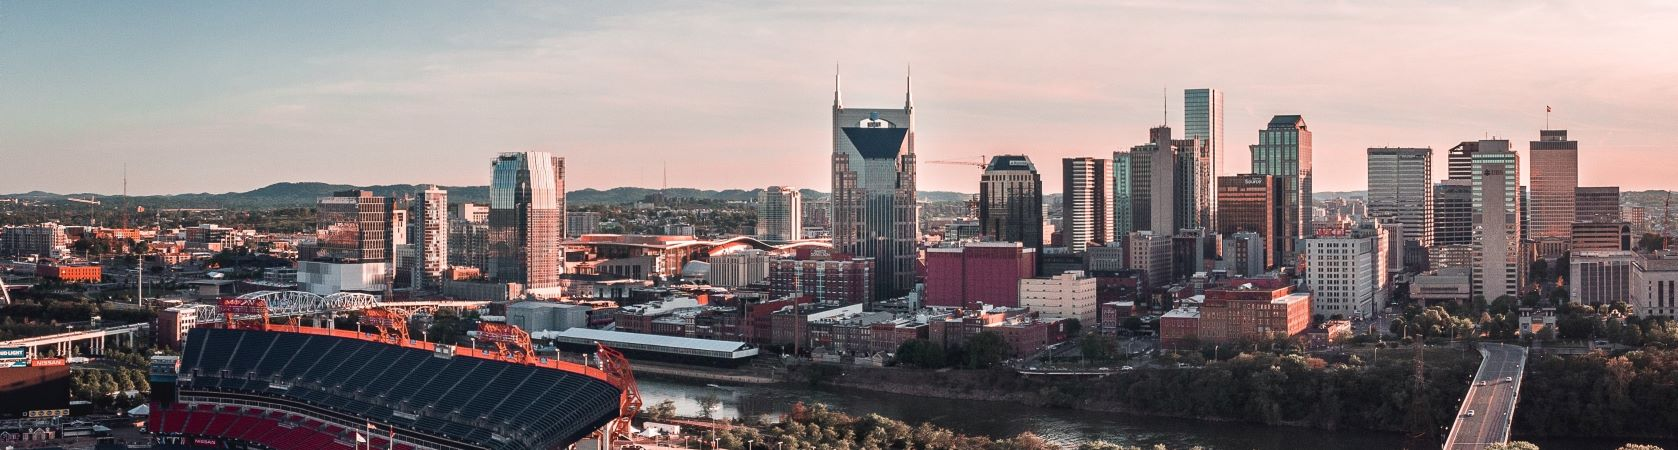 Downtown Nashville Free Stock Photo Unsplash Photo Copyright Tanner Boriack